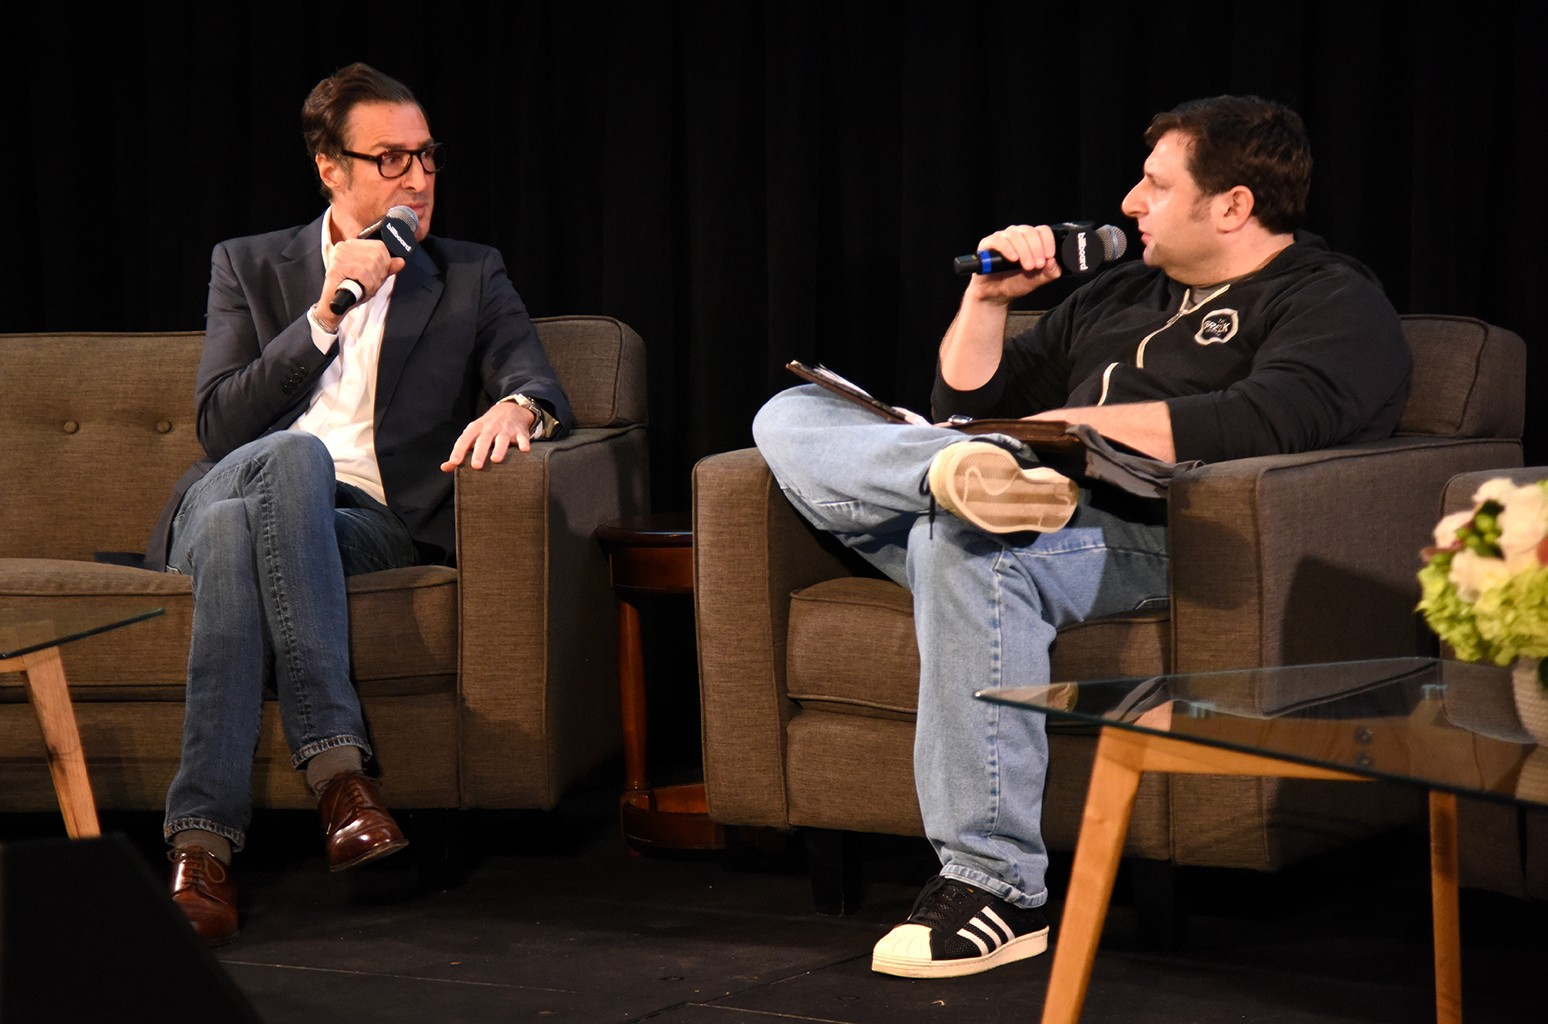 Promoter 101 Q&A with Bernie Cahill panel at the 2018 Billboard Live Music Summit + Awards at the Montage Beverly Hills on Nov. 14, 2018 in Beverly Hills, Calif.